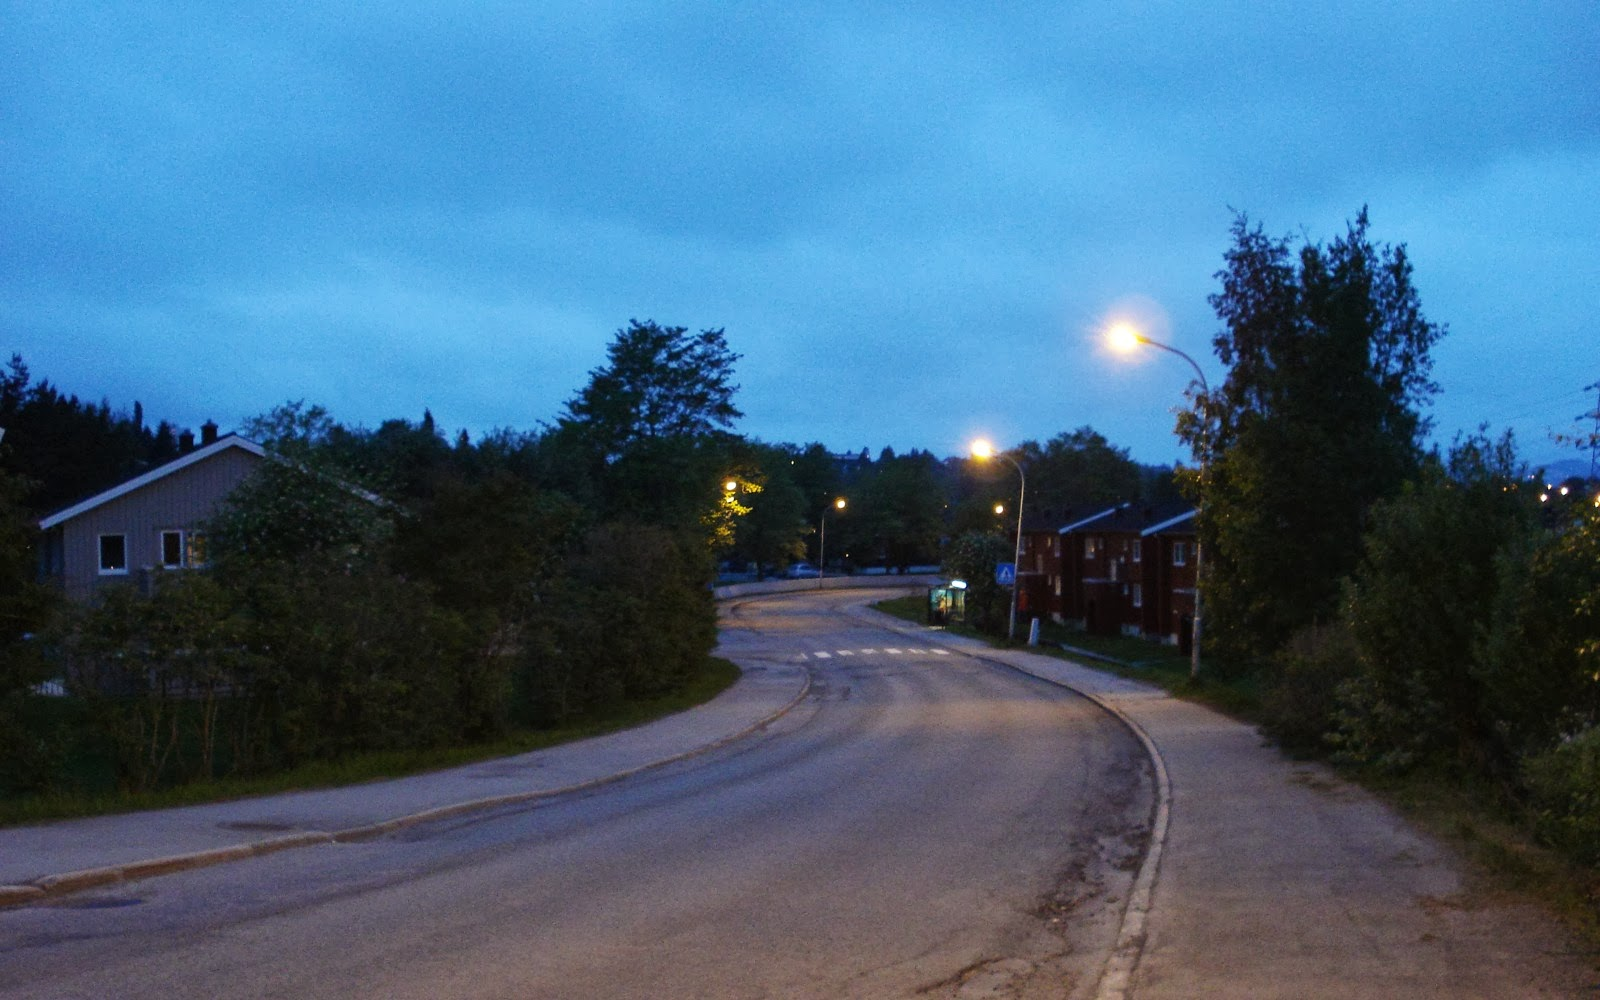 ...And it's still not dark past midnight in the summer in Trondheim.